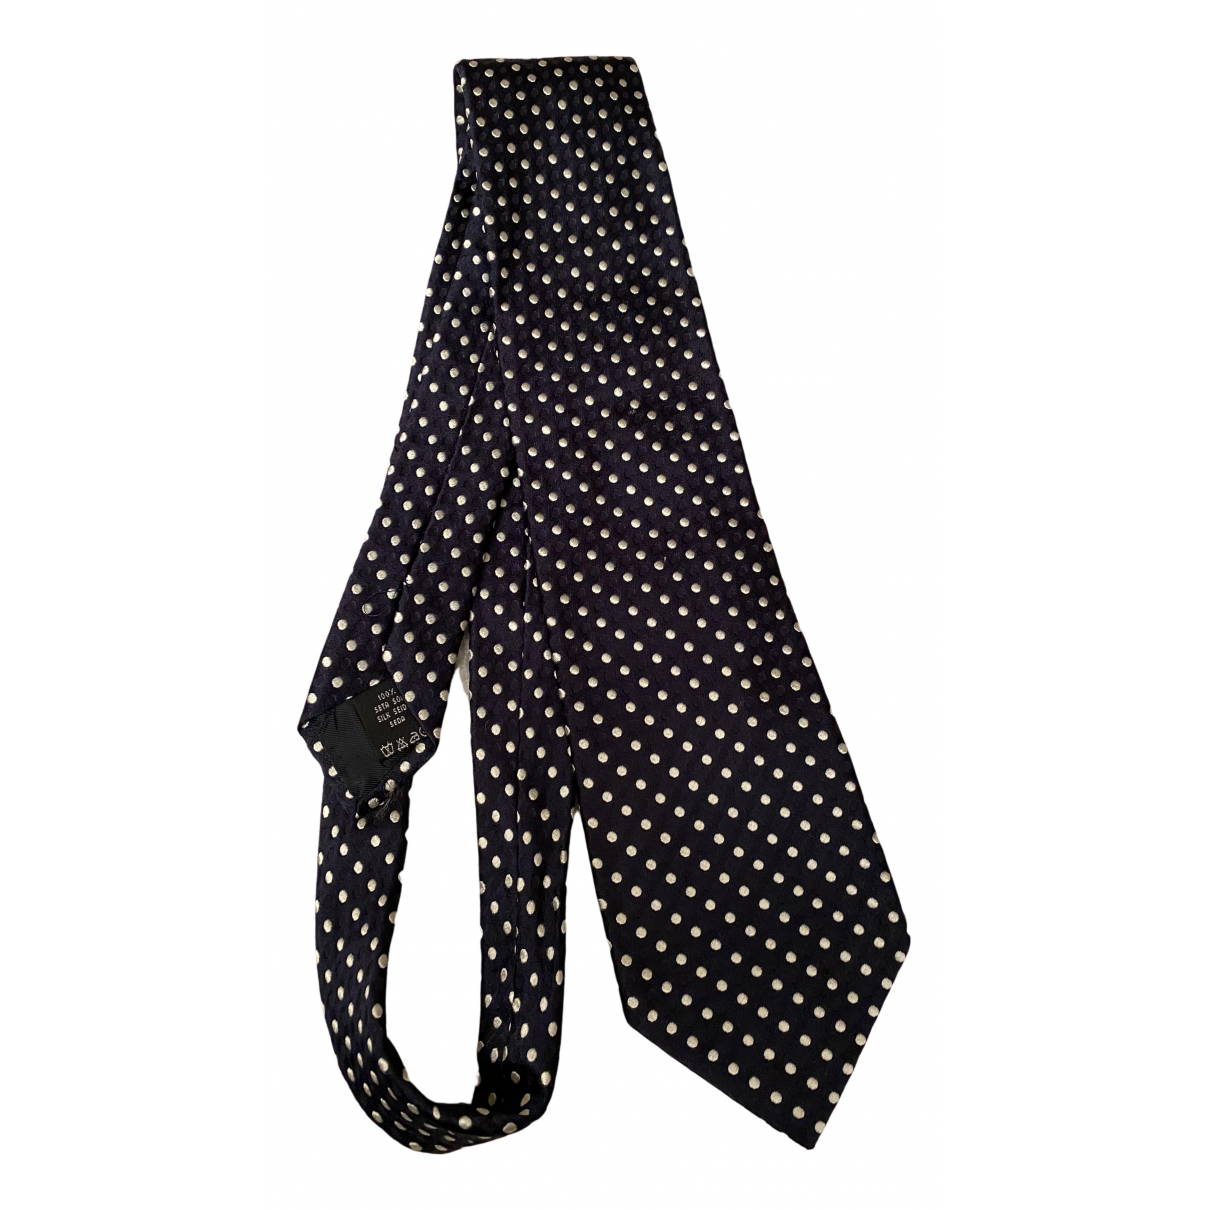 Valentino Garavani N Black Silk Ties for Men N